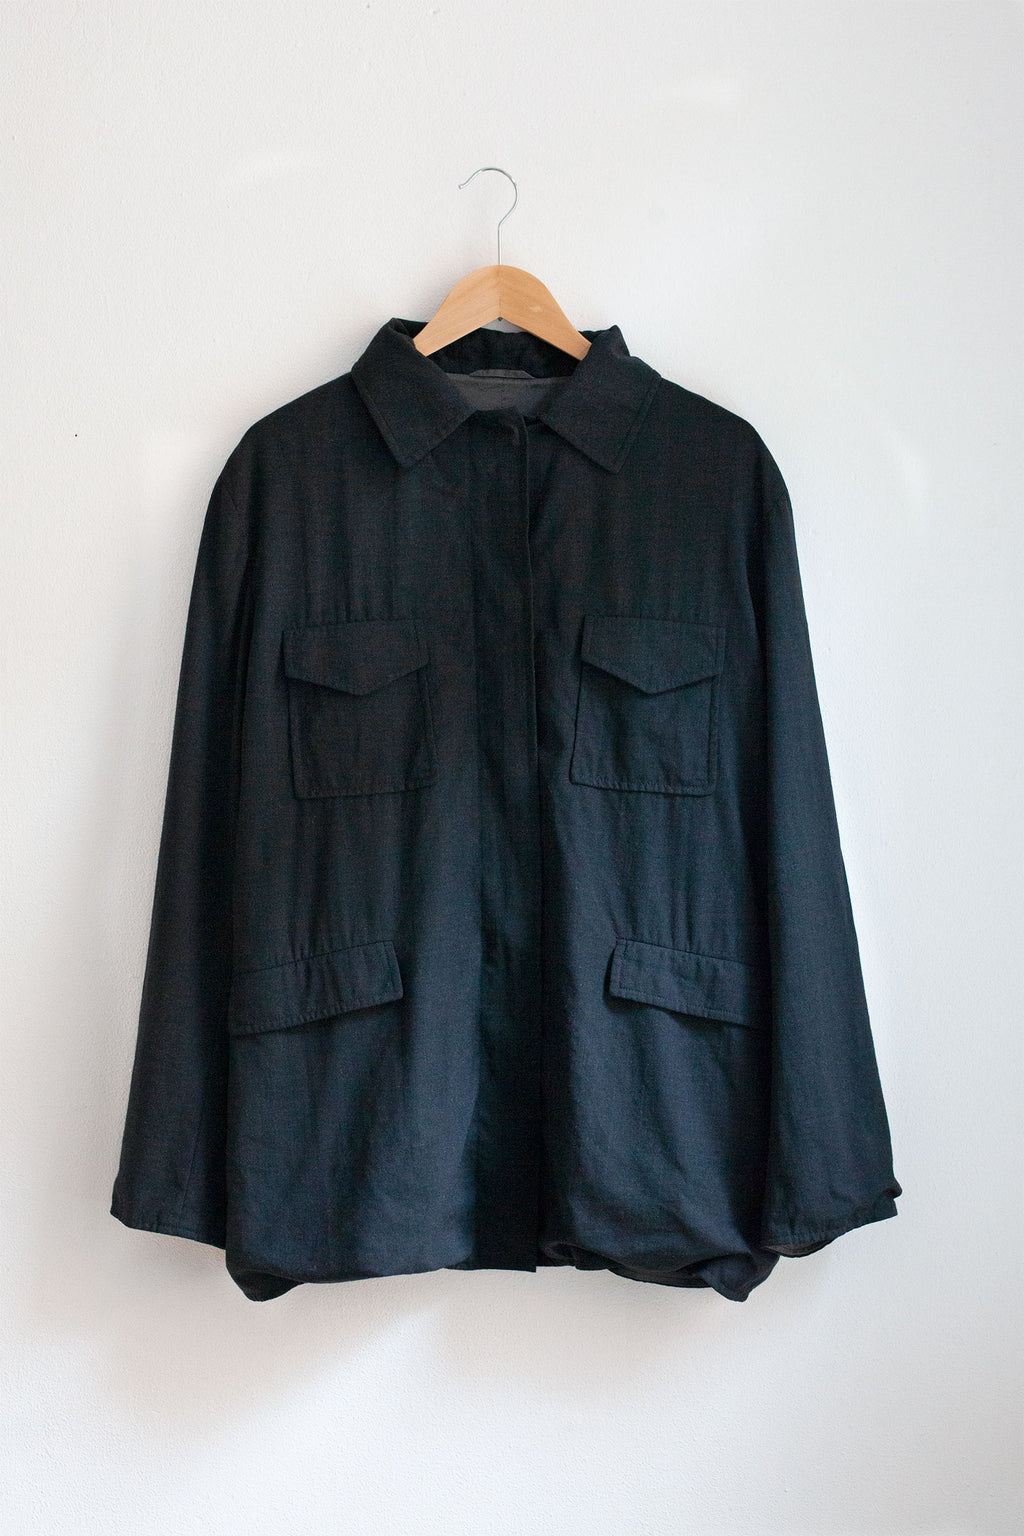 Jil Sander Dark Grey Workers Jacket